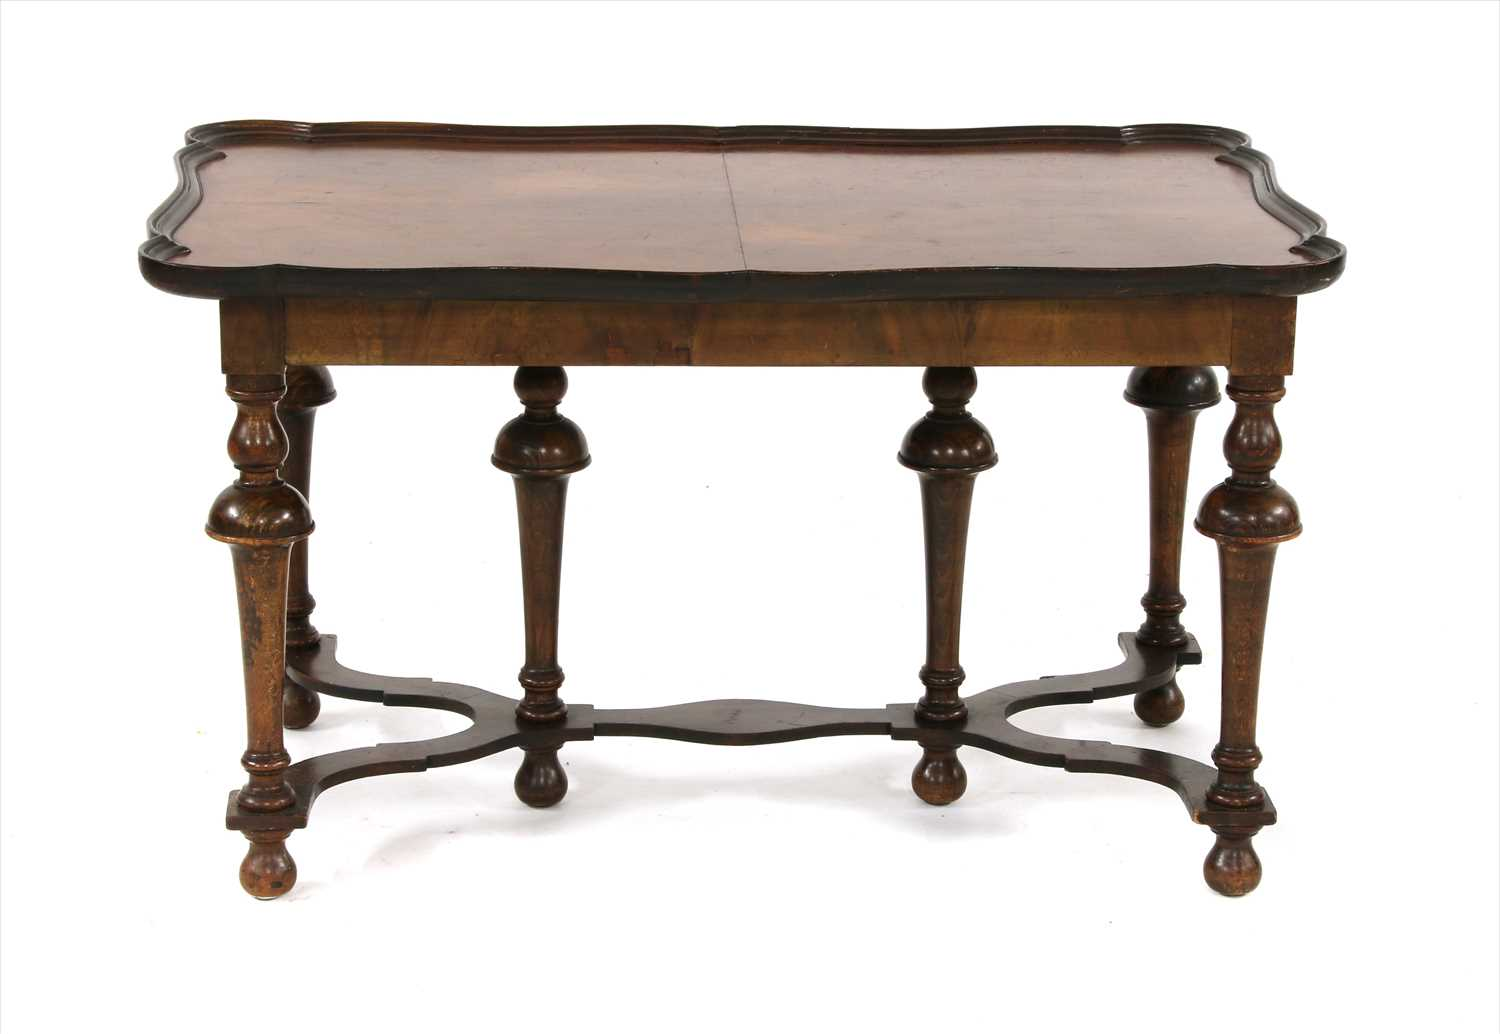 Lot 714 - An 18th century style walnut tray top occasional table,